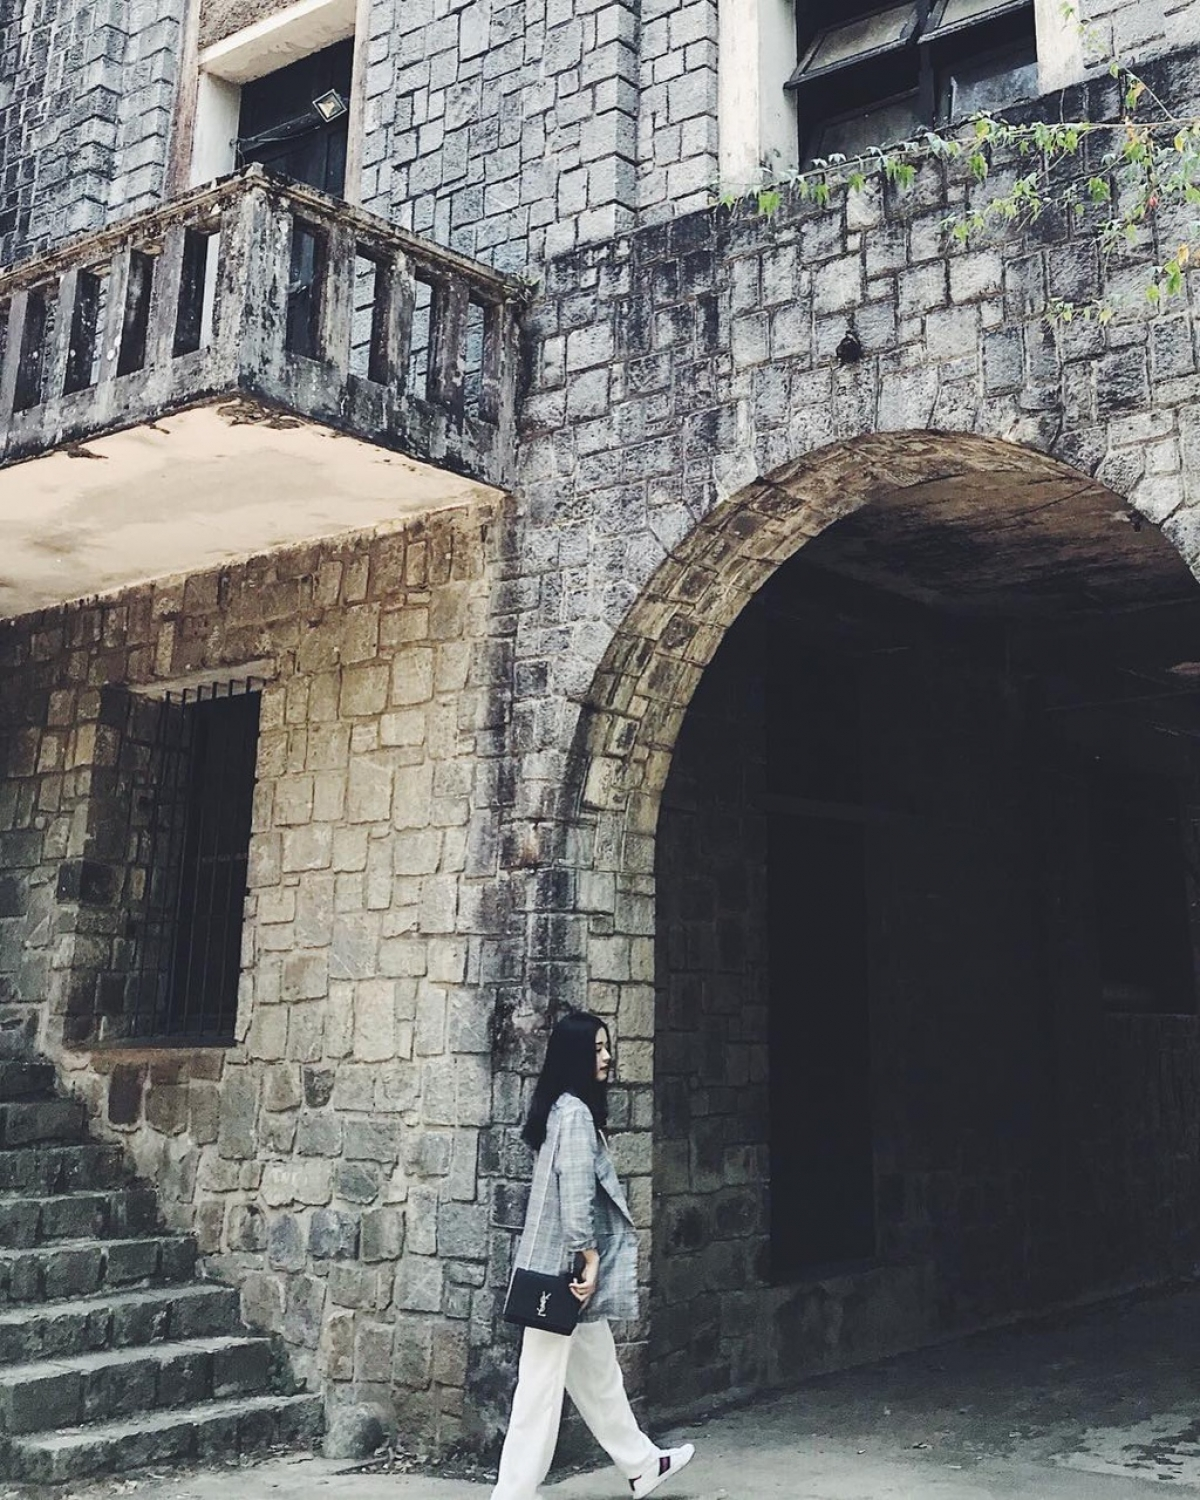 It appears like a castle from old Western movies, with every inch of the building making guests imagine magical stories. (Photo: Nhu.nhuchan)